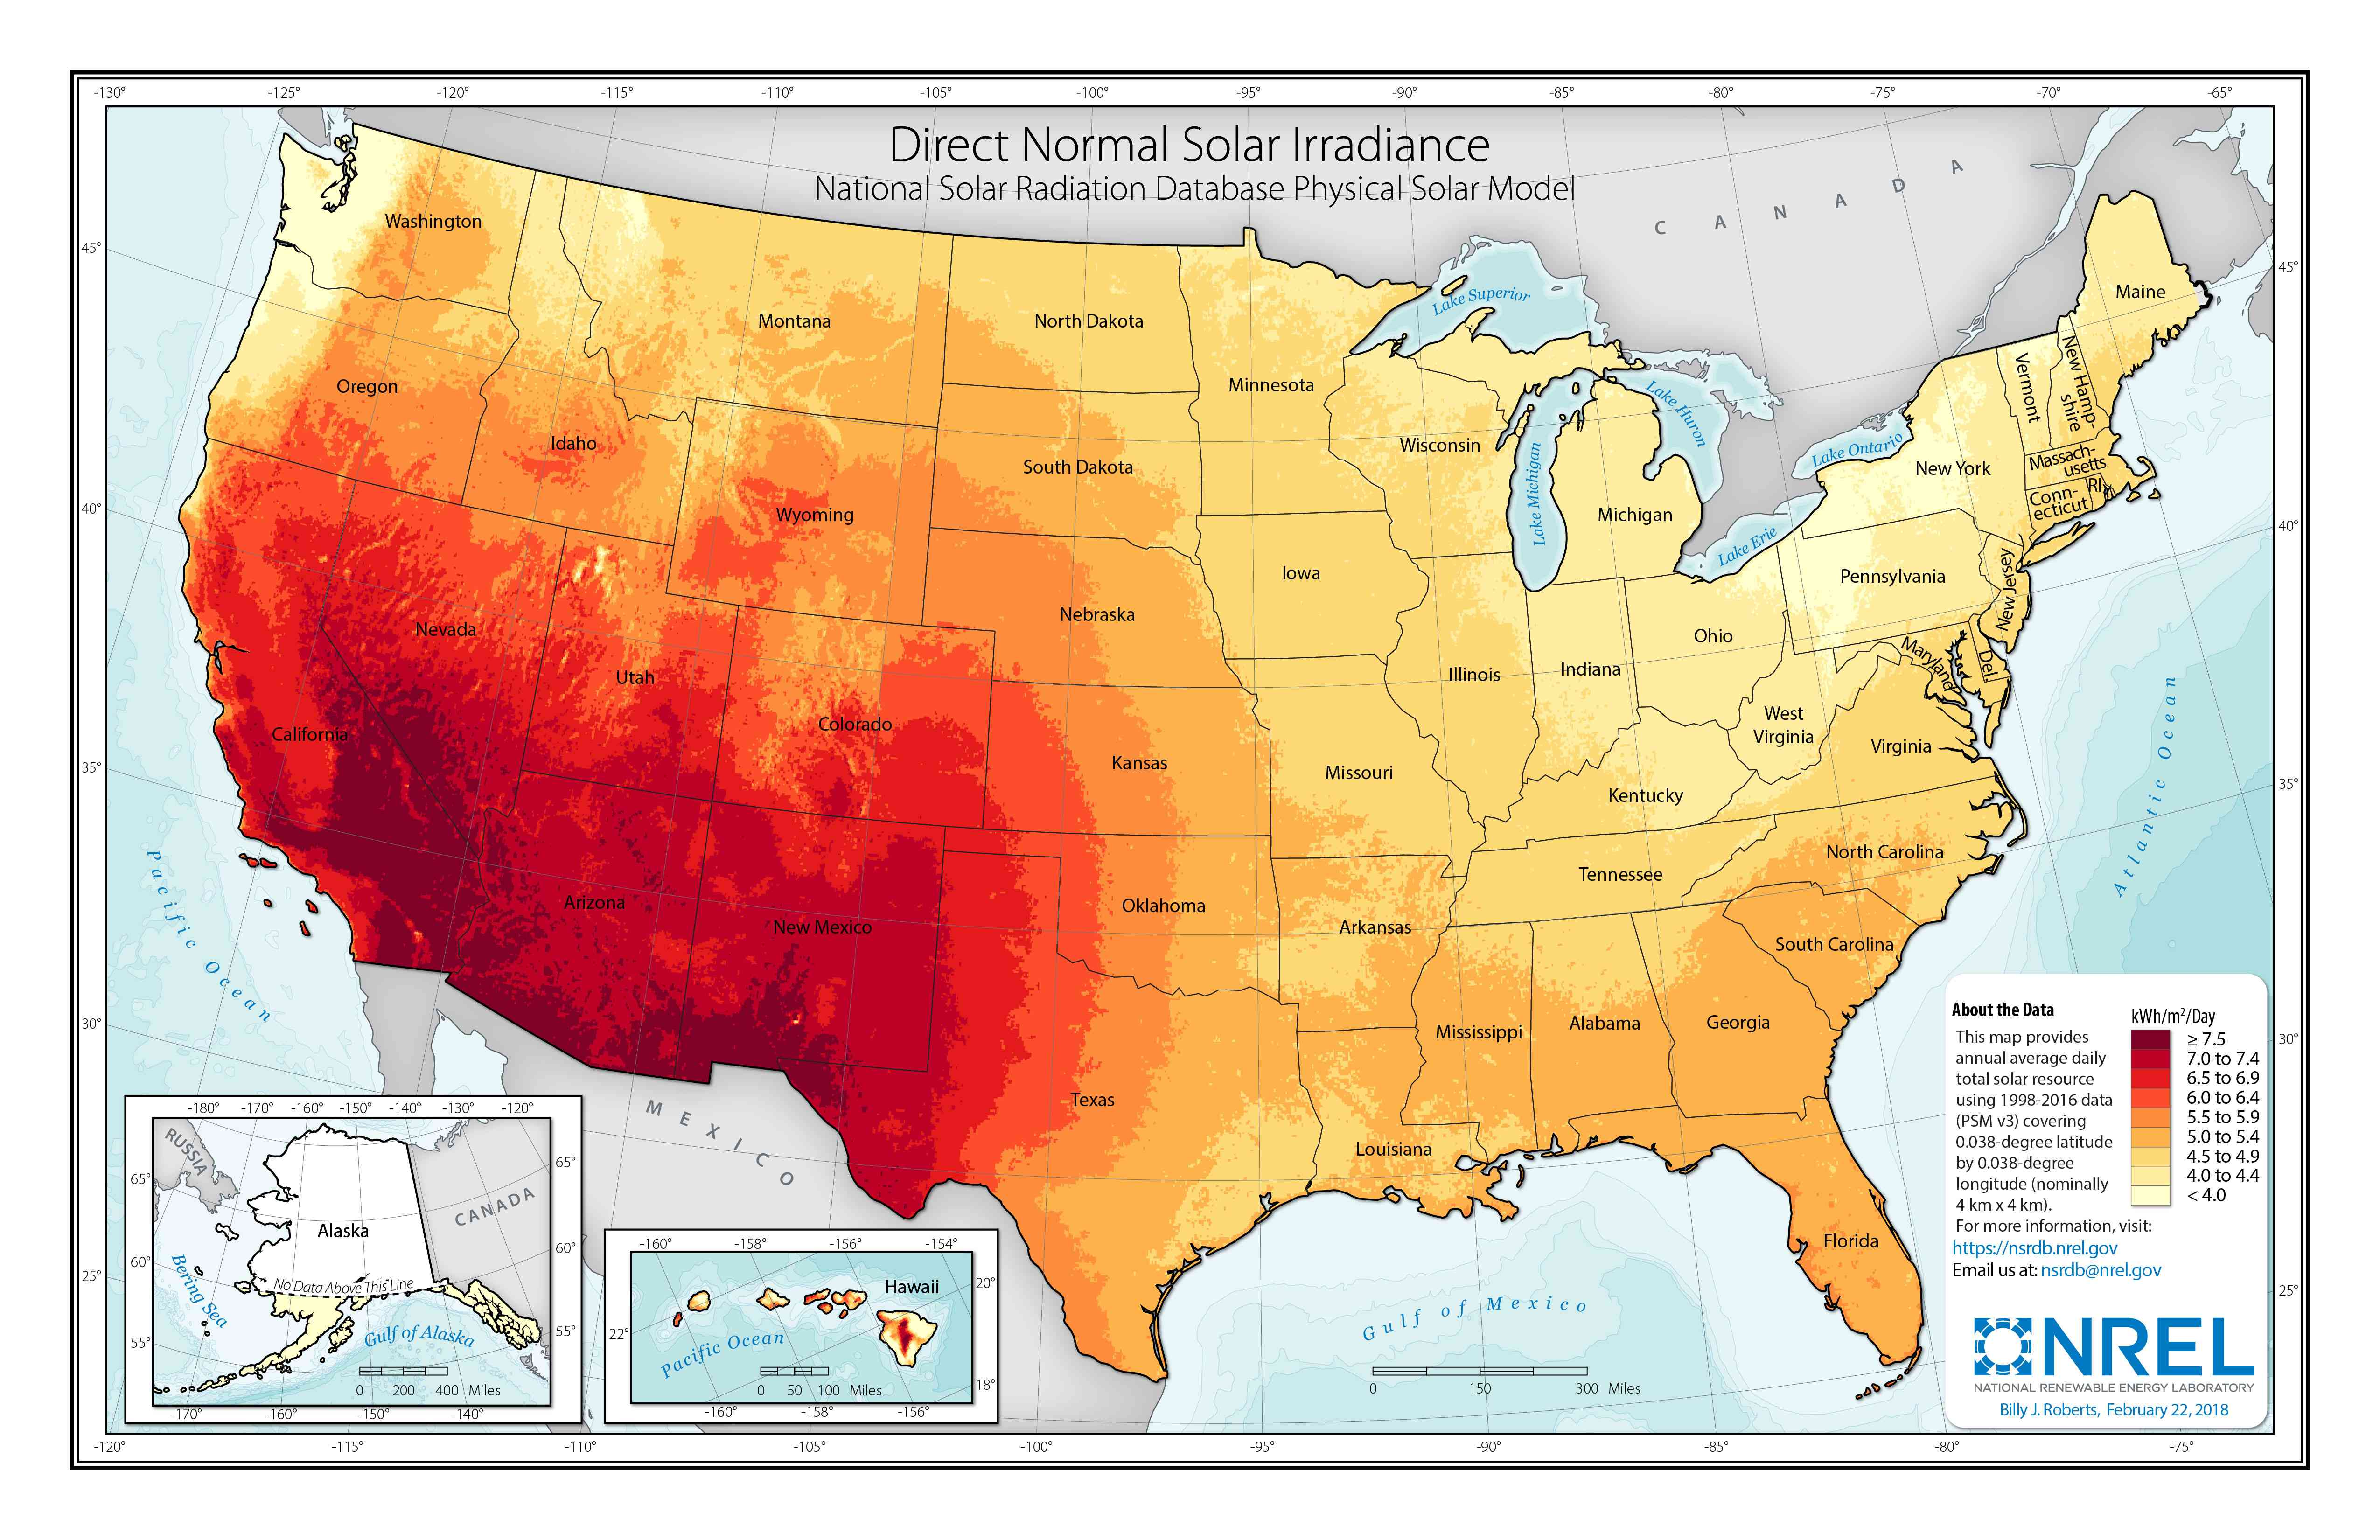 Map of direct normal solar irradiance in the United States